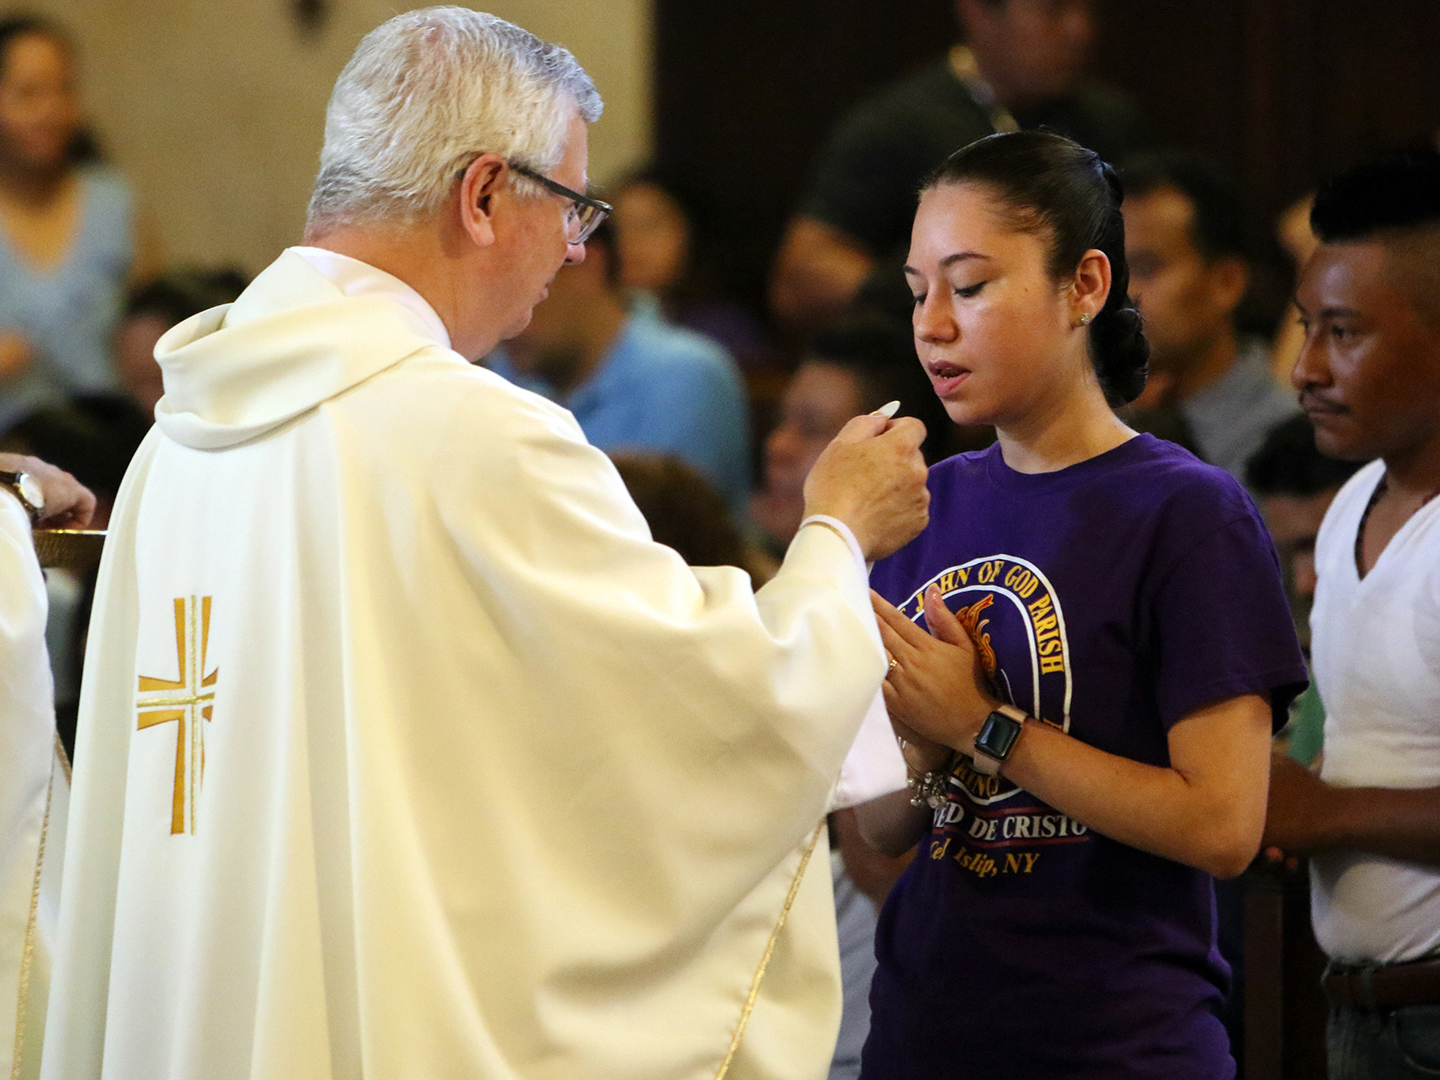 Young Latina woman receives communion